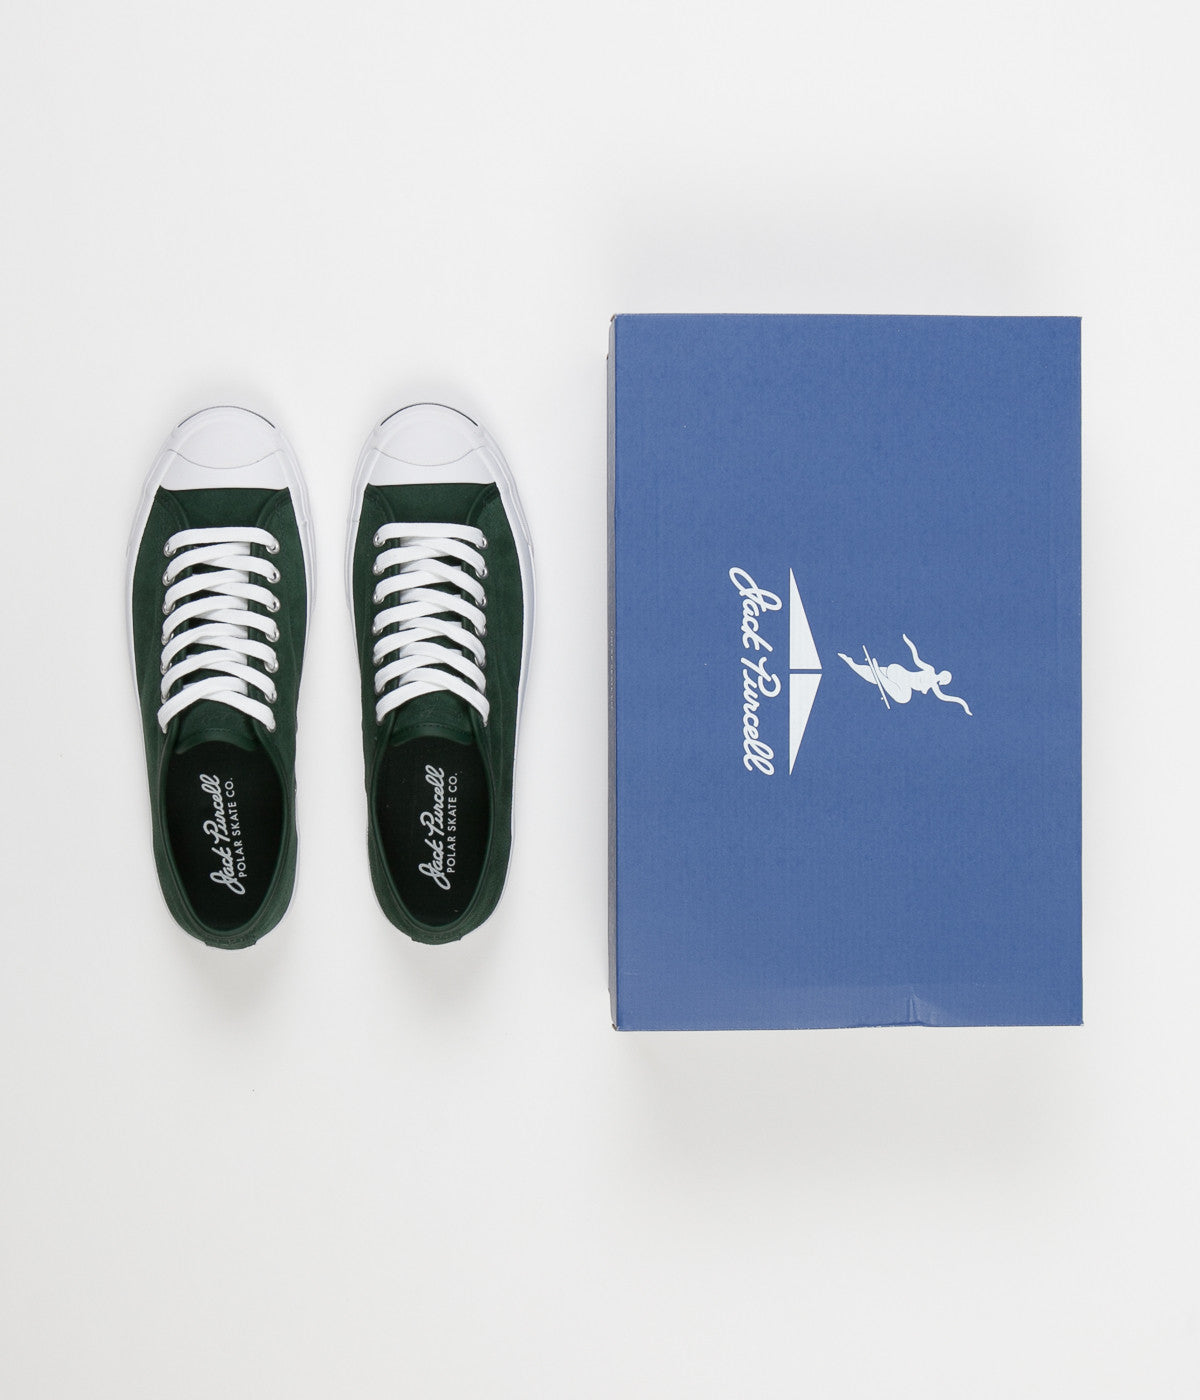 Jack Shoes Polar X Jp Converse Emerald Purcell Ox Deep Pro vNO80mwn